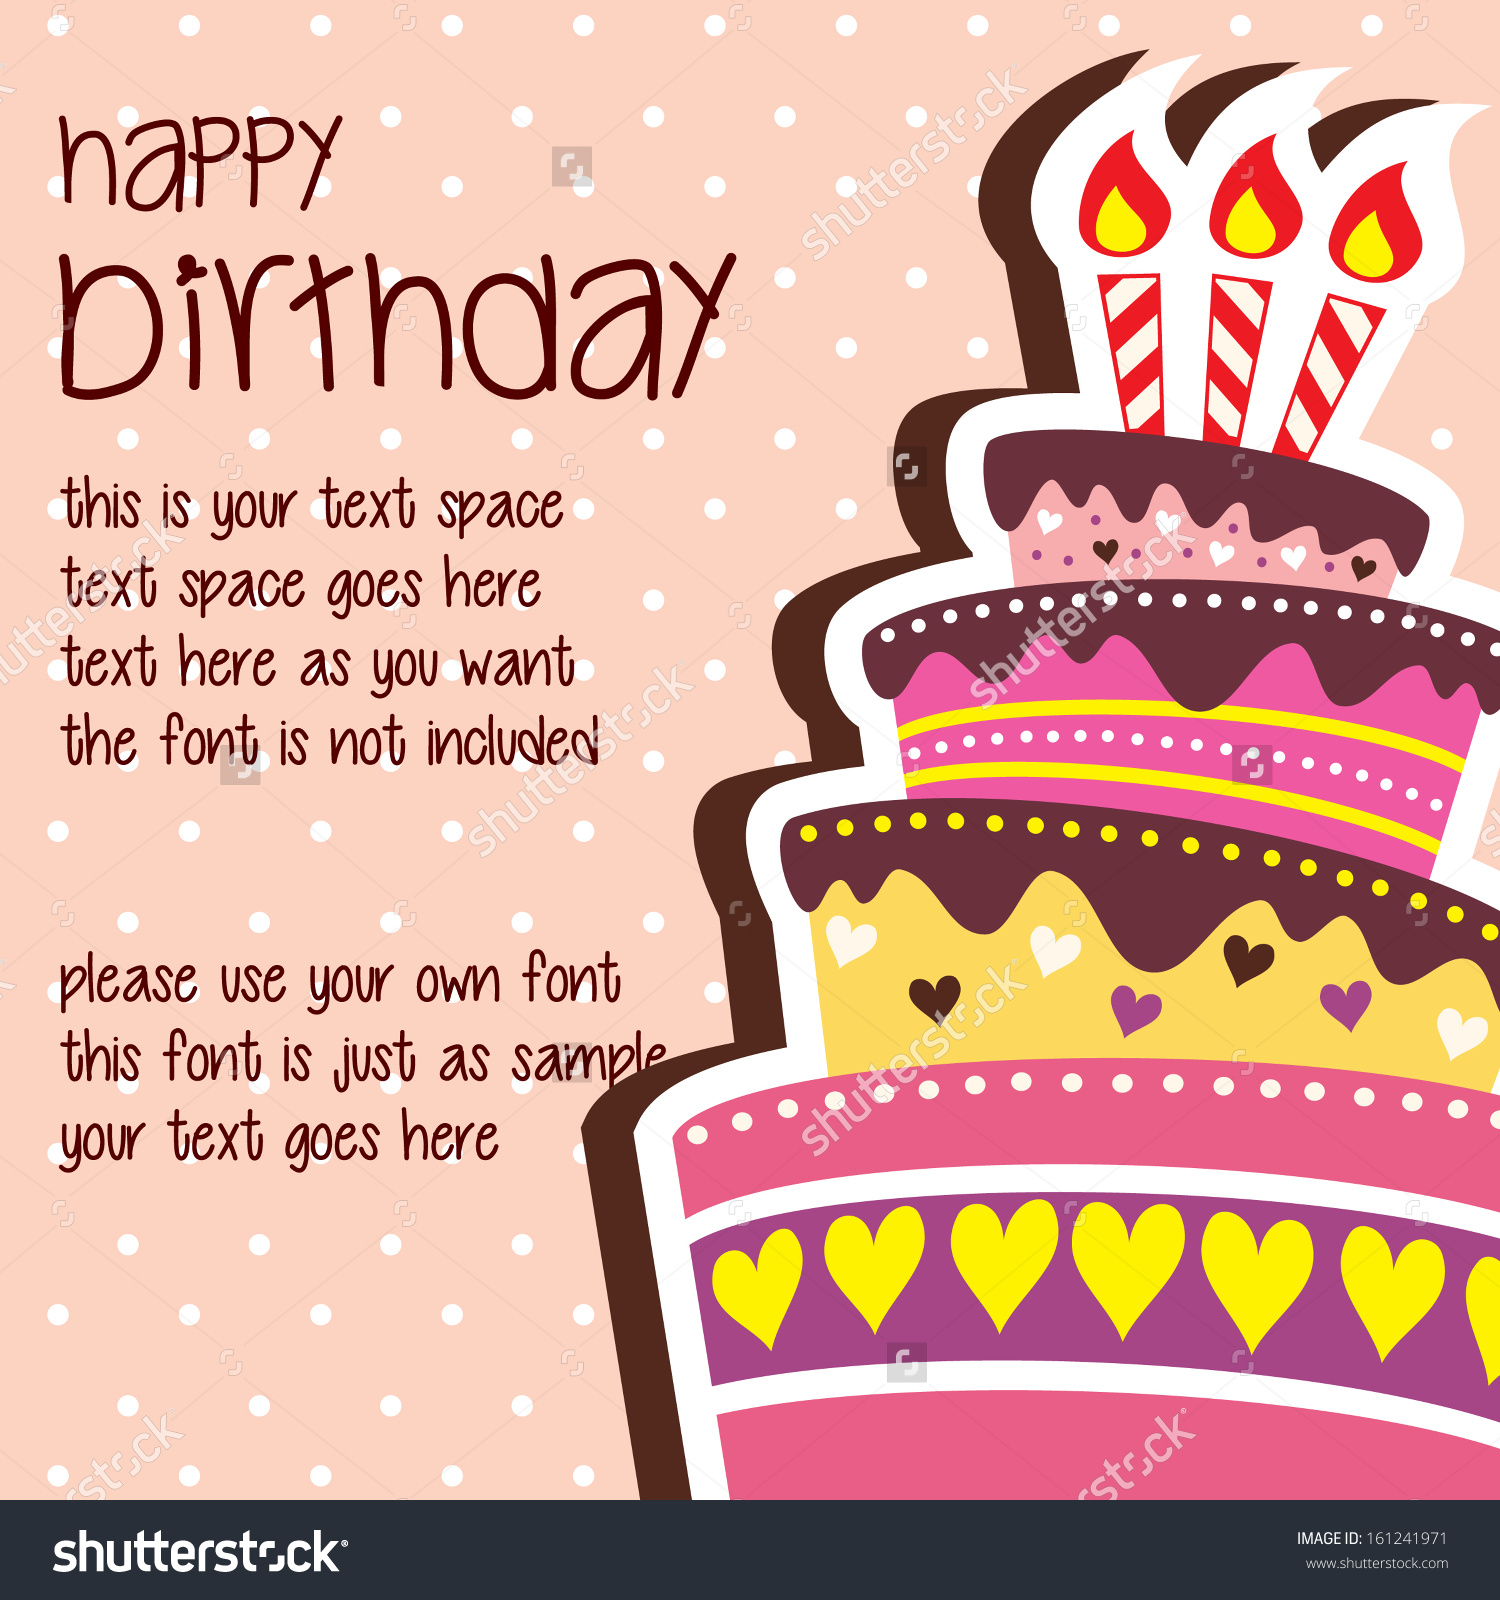 birthday invitation card design template free ; save-to-a-lightbox-layers-cake-design-image-layout-with-poem-and-friendly-words-pink-theme-happy-birthday-card-template